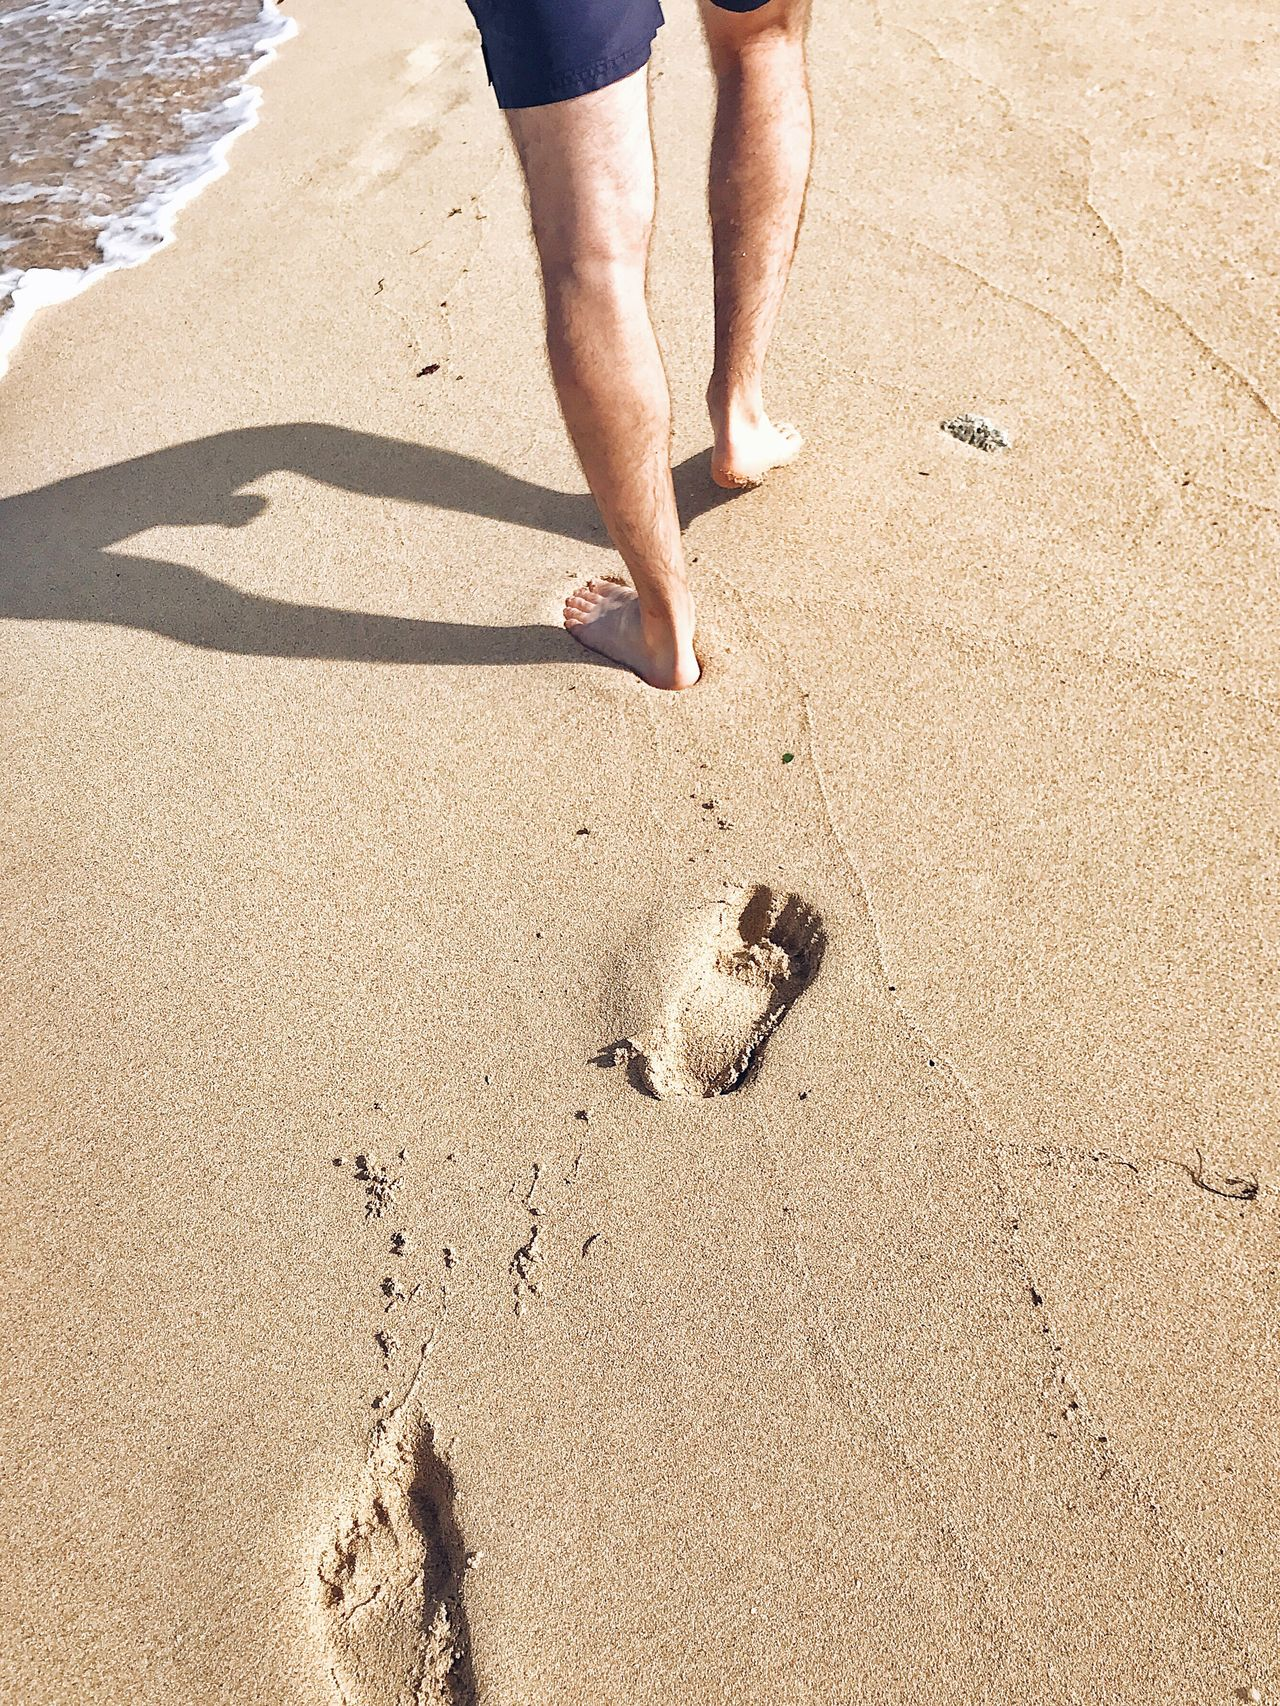 One of the things I like about the beach, is walking on it. The feeling I get on my toes makes me feel alive. Beach Sand FootPrint Sunlight Human Body Part Vacations Summer People Happy Feet Feet Marks On Sand Toes In The Sand Toes Sand & Sea Beach Life High Angle View Foot Steps